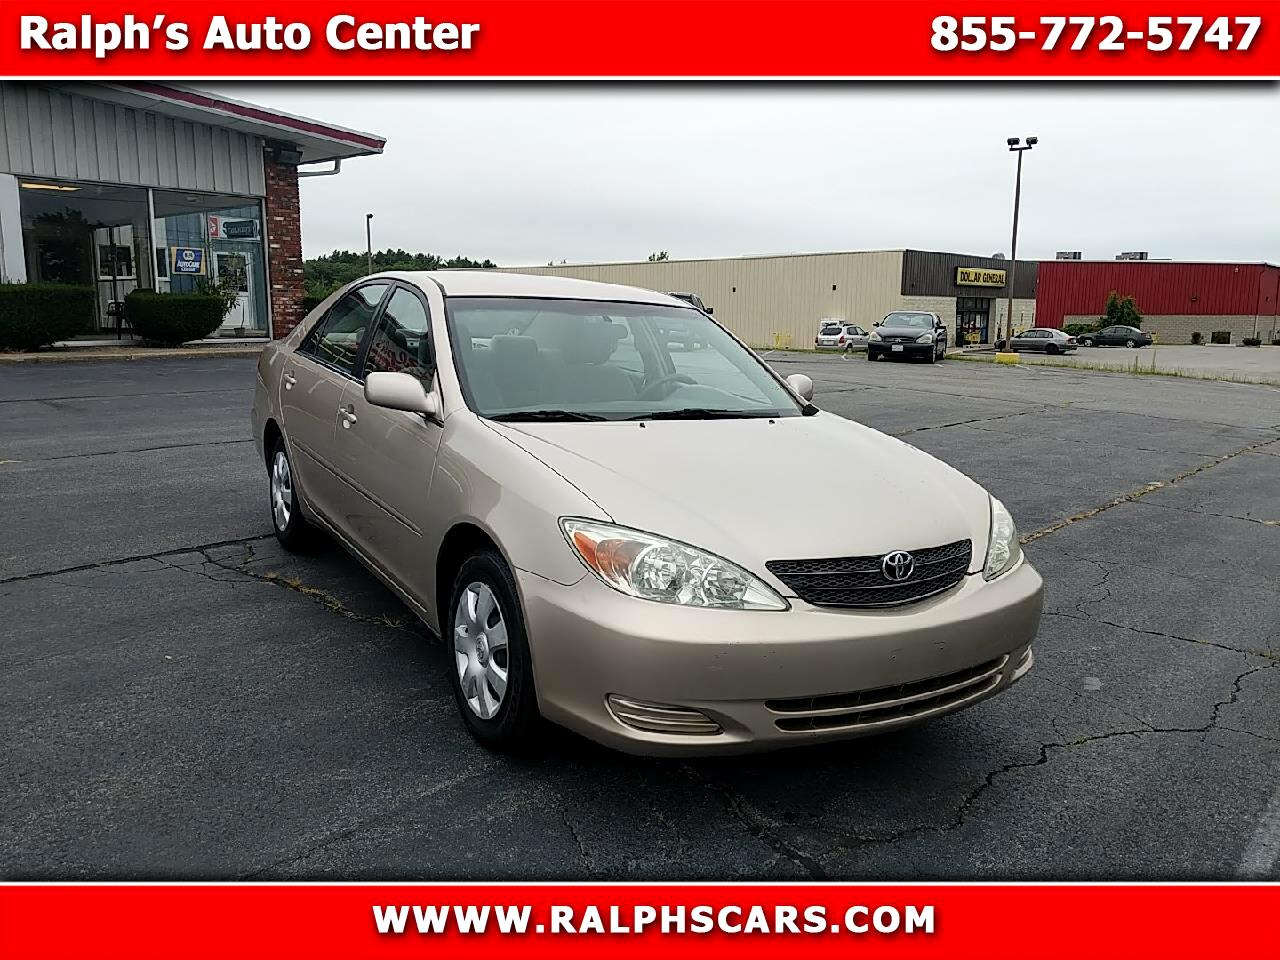 Toyota Camry 4dr Sdn LE Auto (Natl) 2003